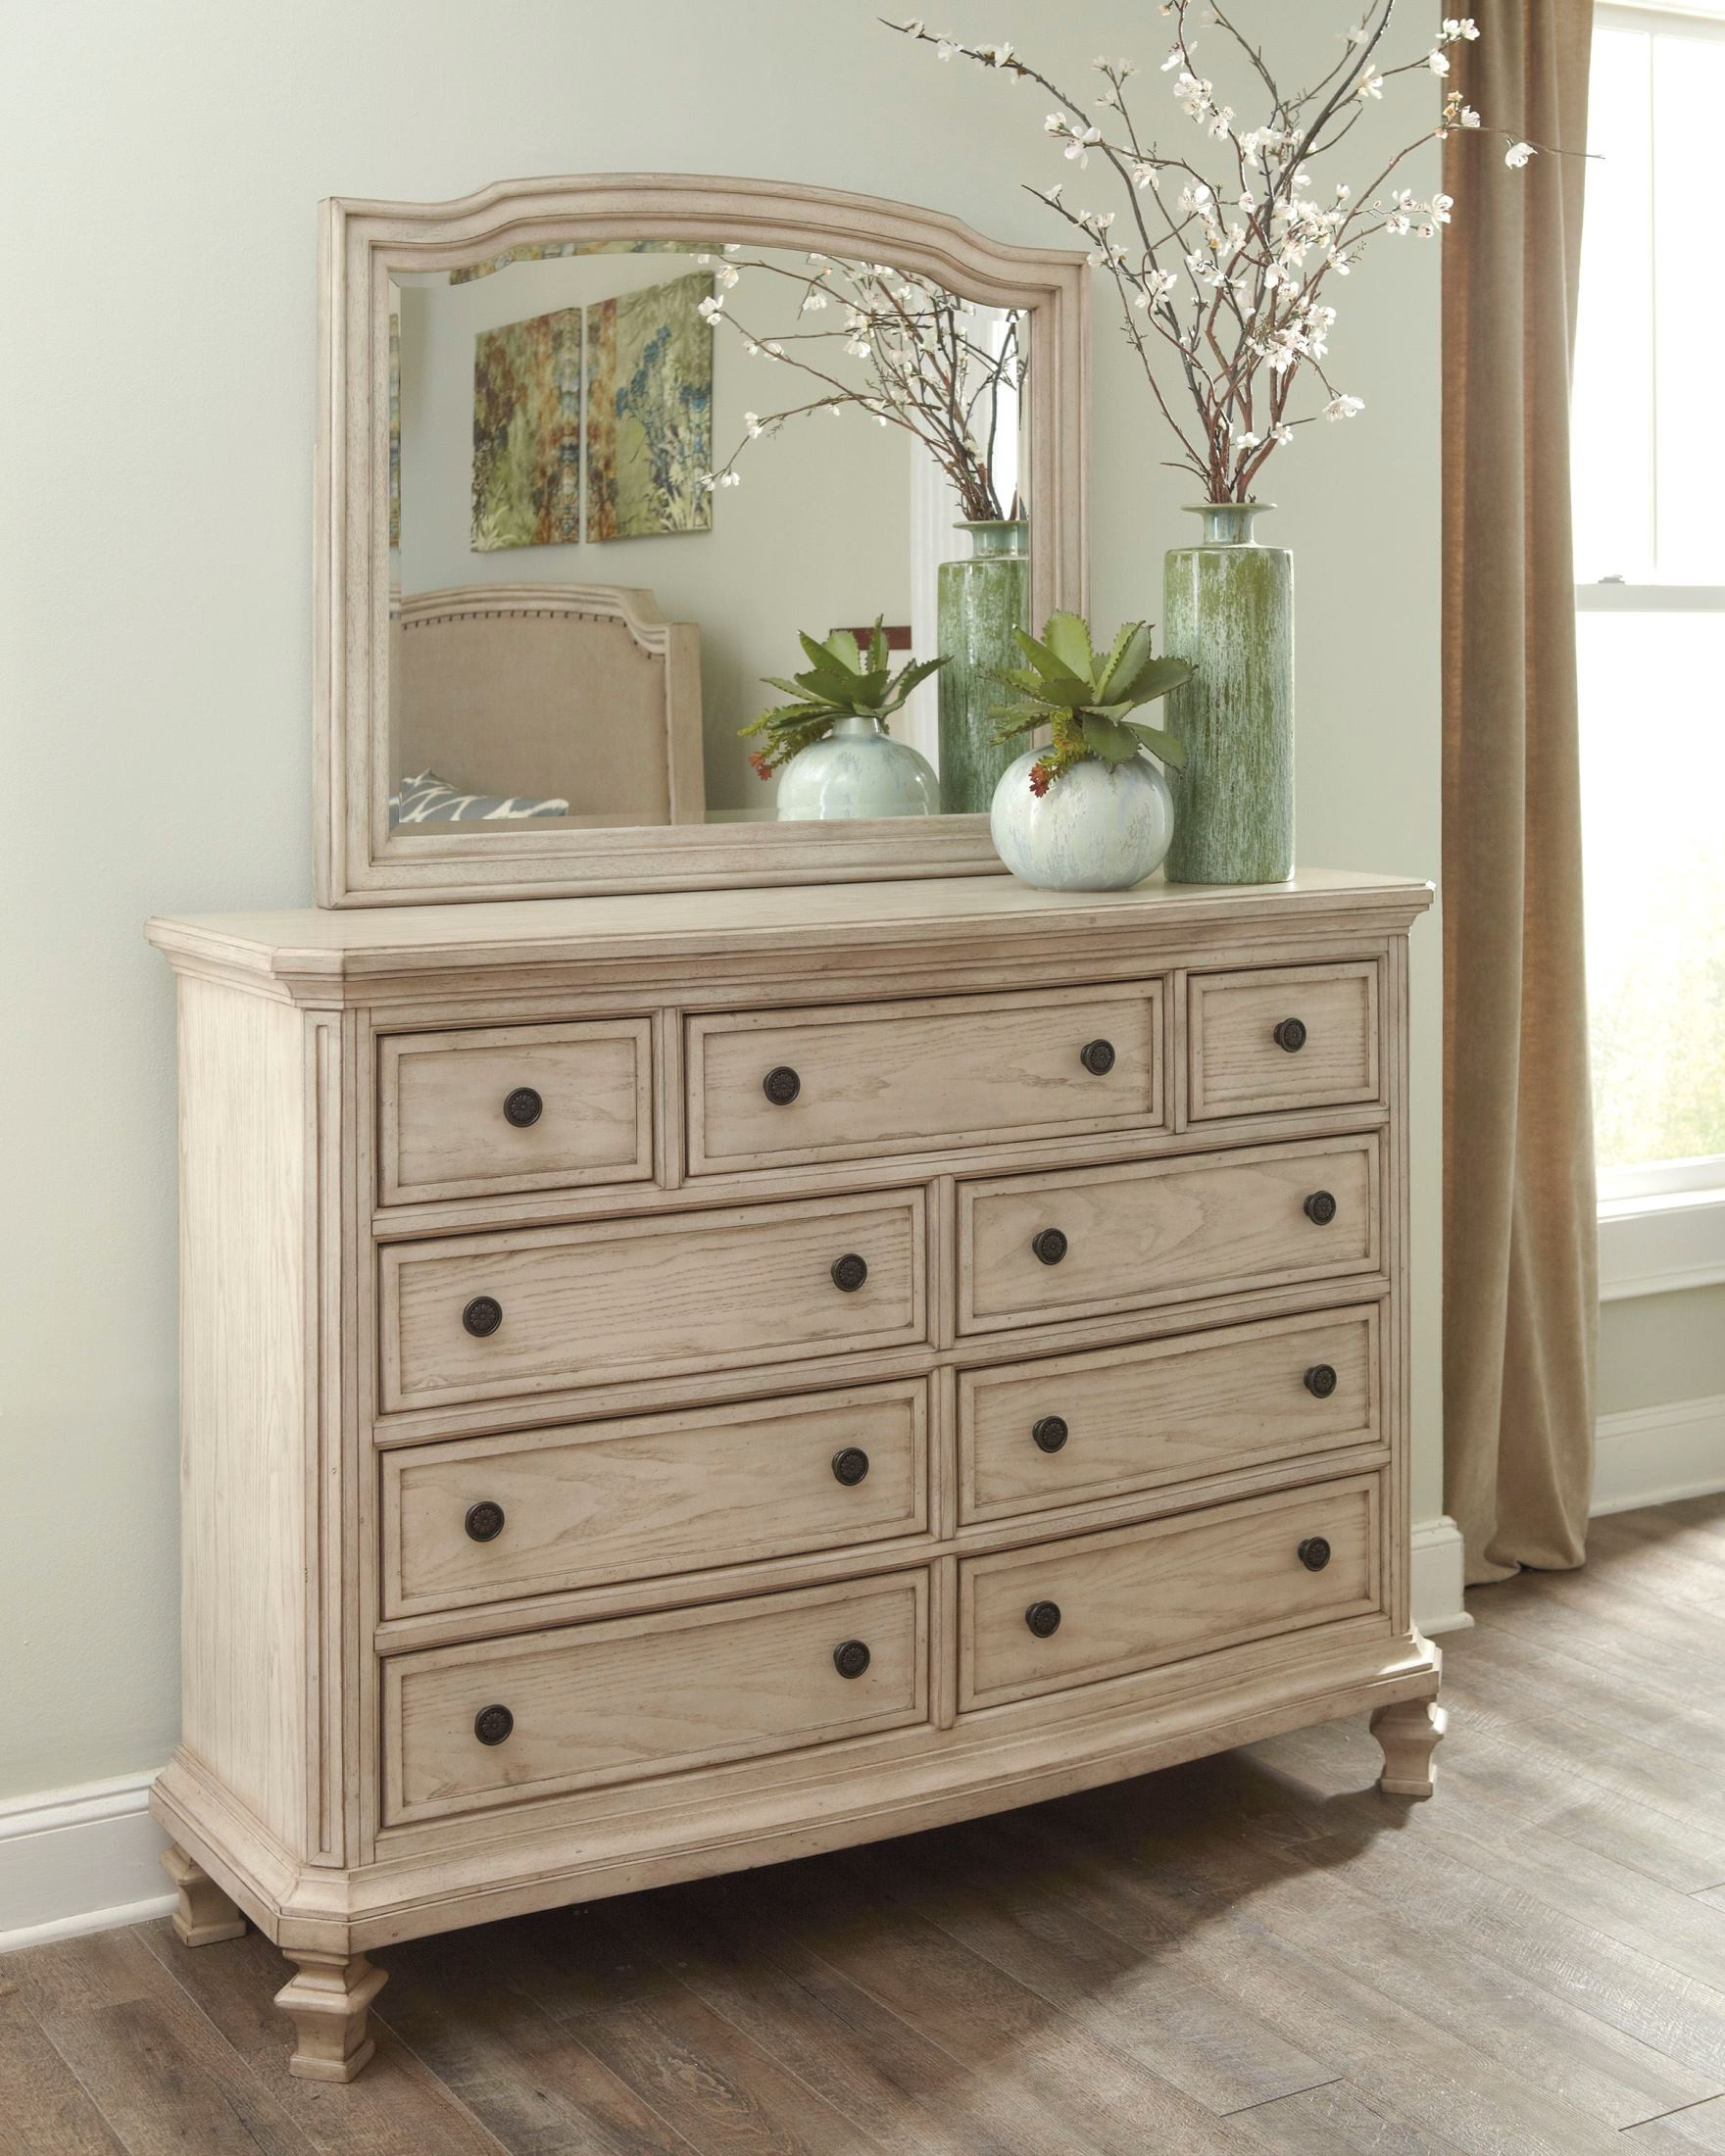 Next Mirrored Bedroom Furniture Demarlos Upholstered Panel Bedroom Set From Ashley B693 77 74 96